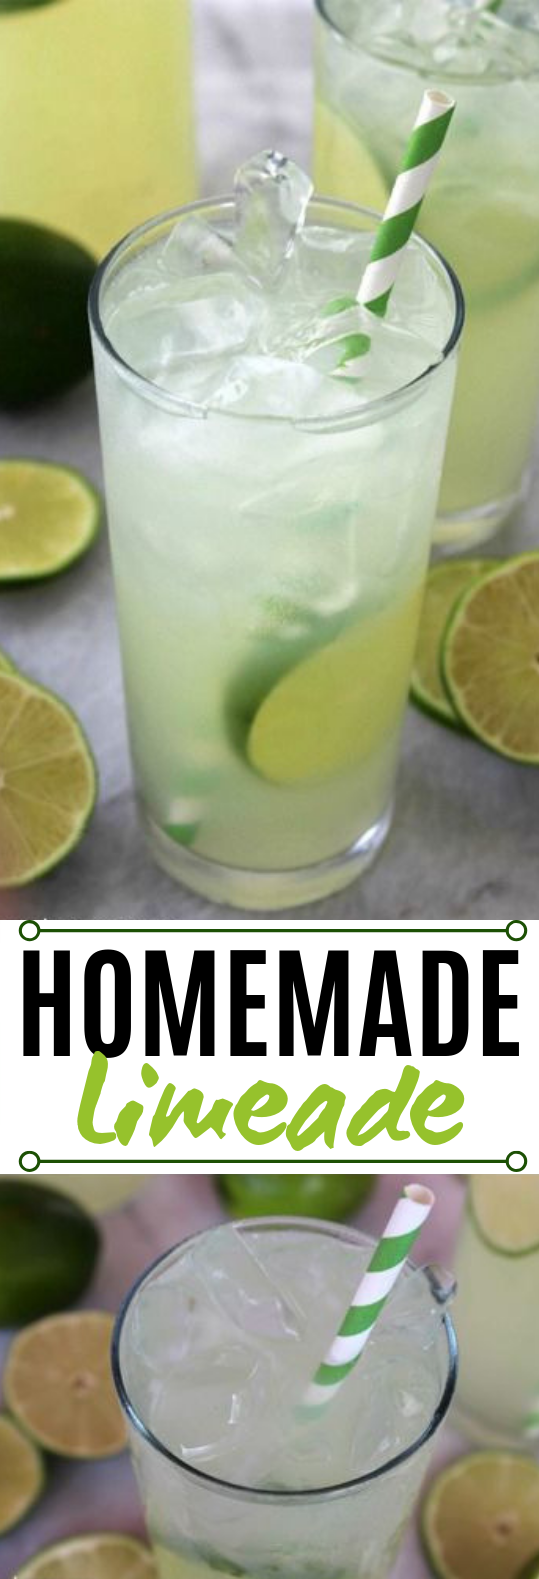 Homemade Limeade #summer #drinks